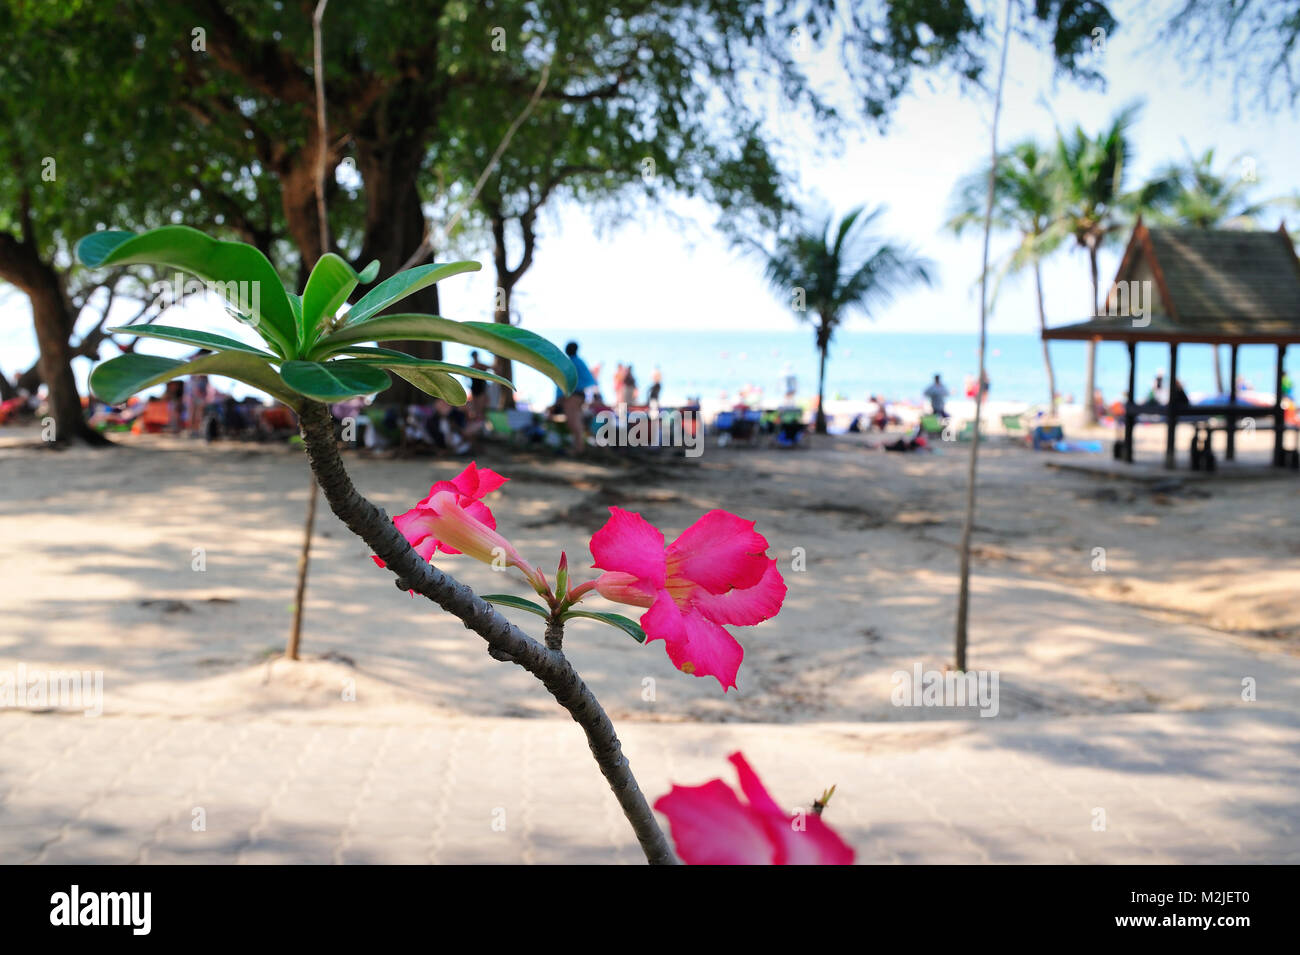 Soi Kaew Beach Resort Thailand - Stock Image